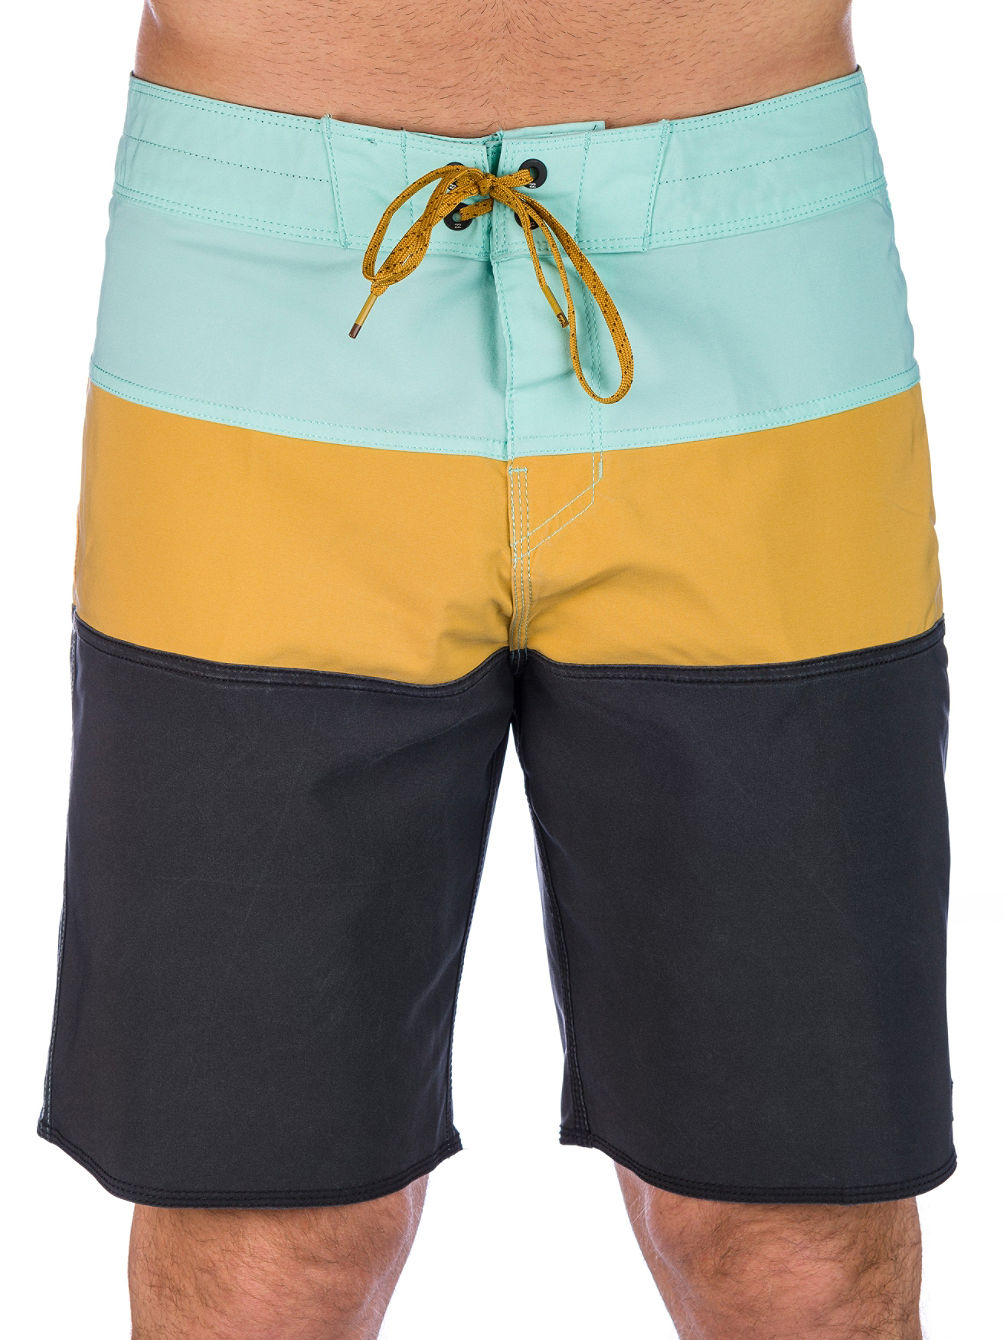 Tribong Pro Solid Boardshorts